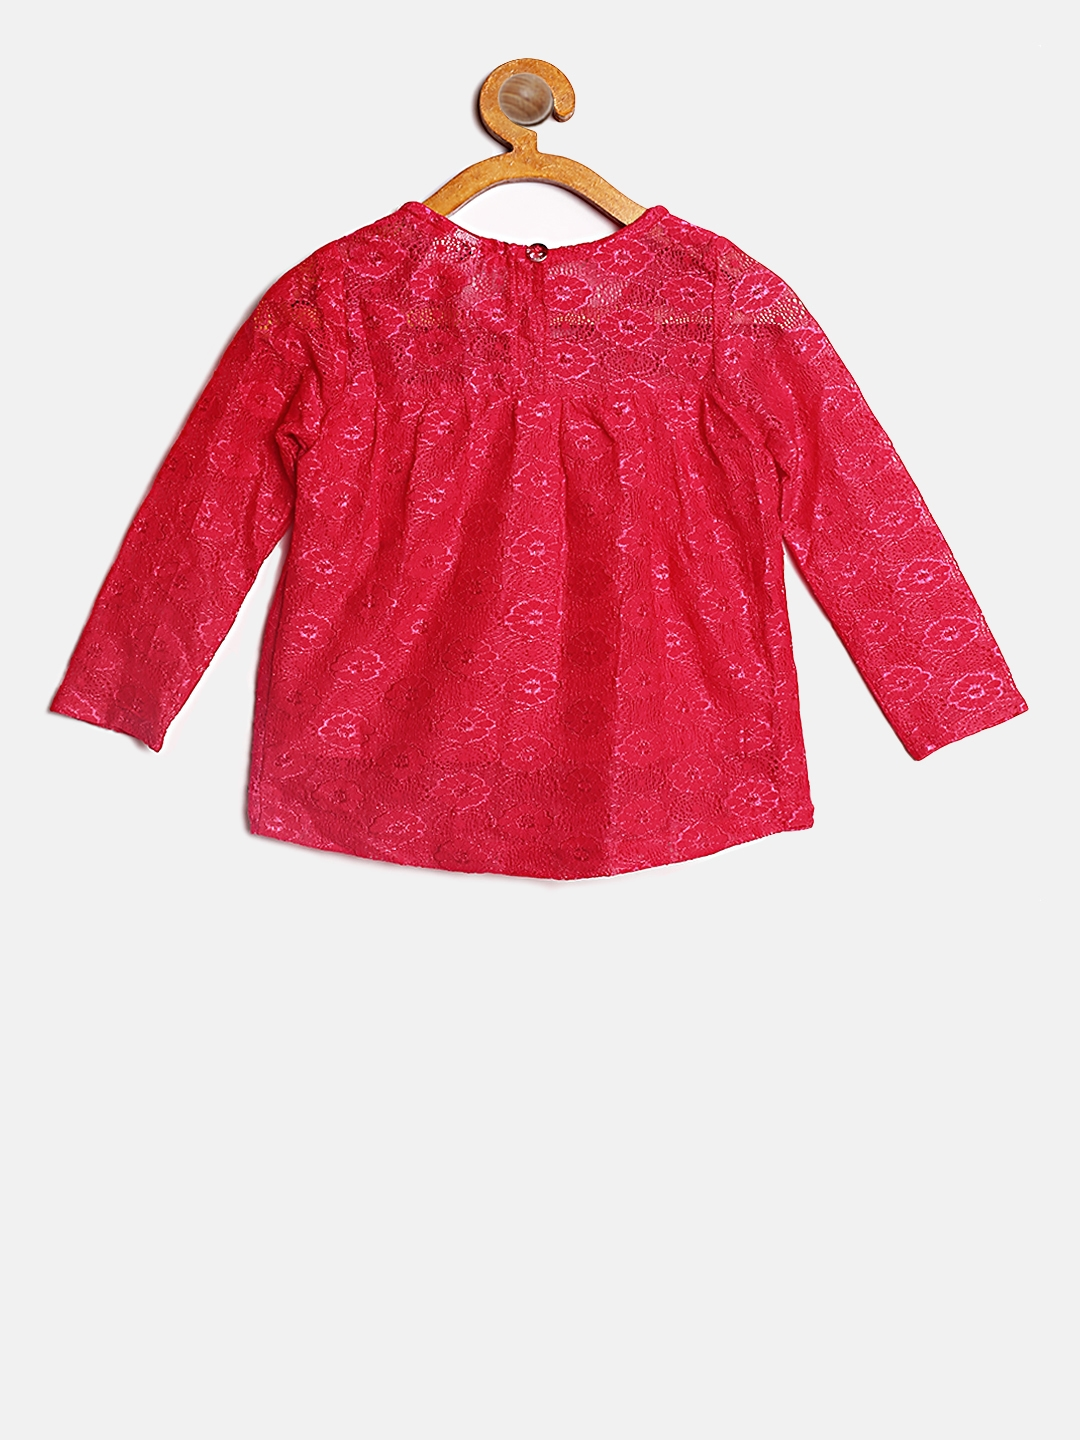 a1f5f10bdca0e3 Buy 612 League Girls Pink Lace Top - Tops for Girls 6592018